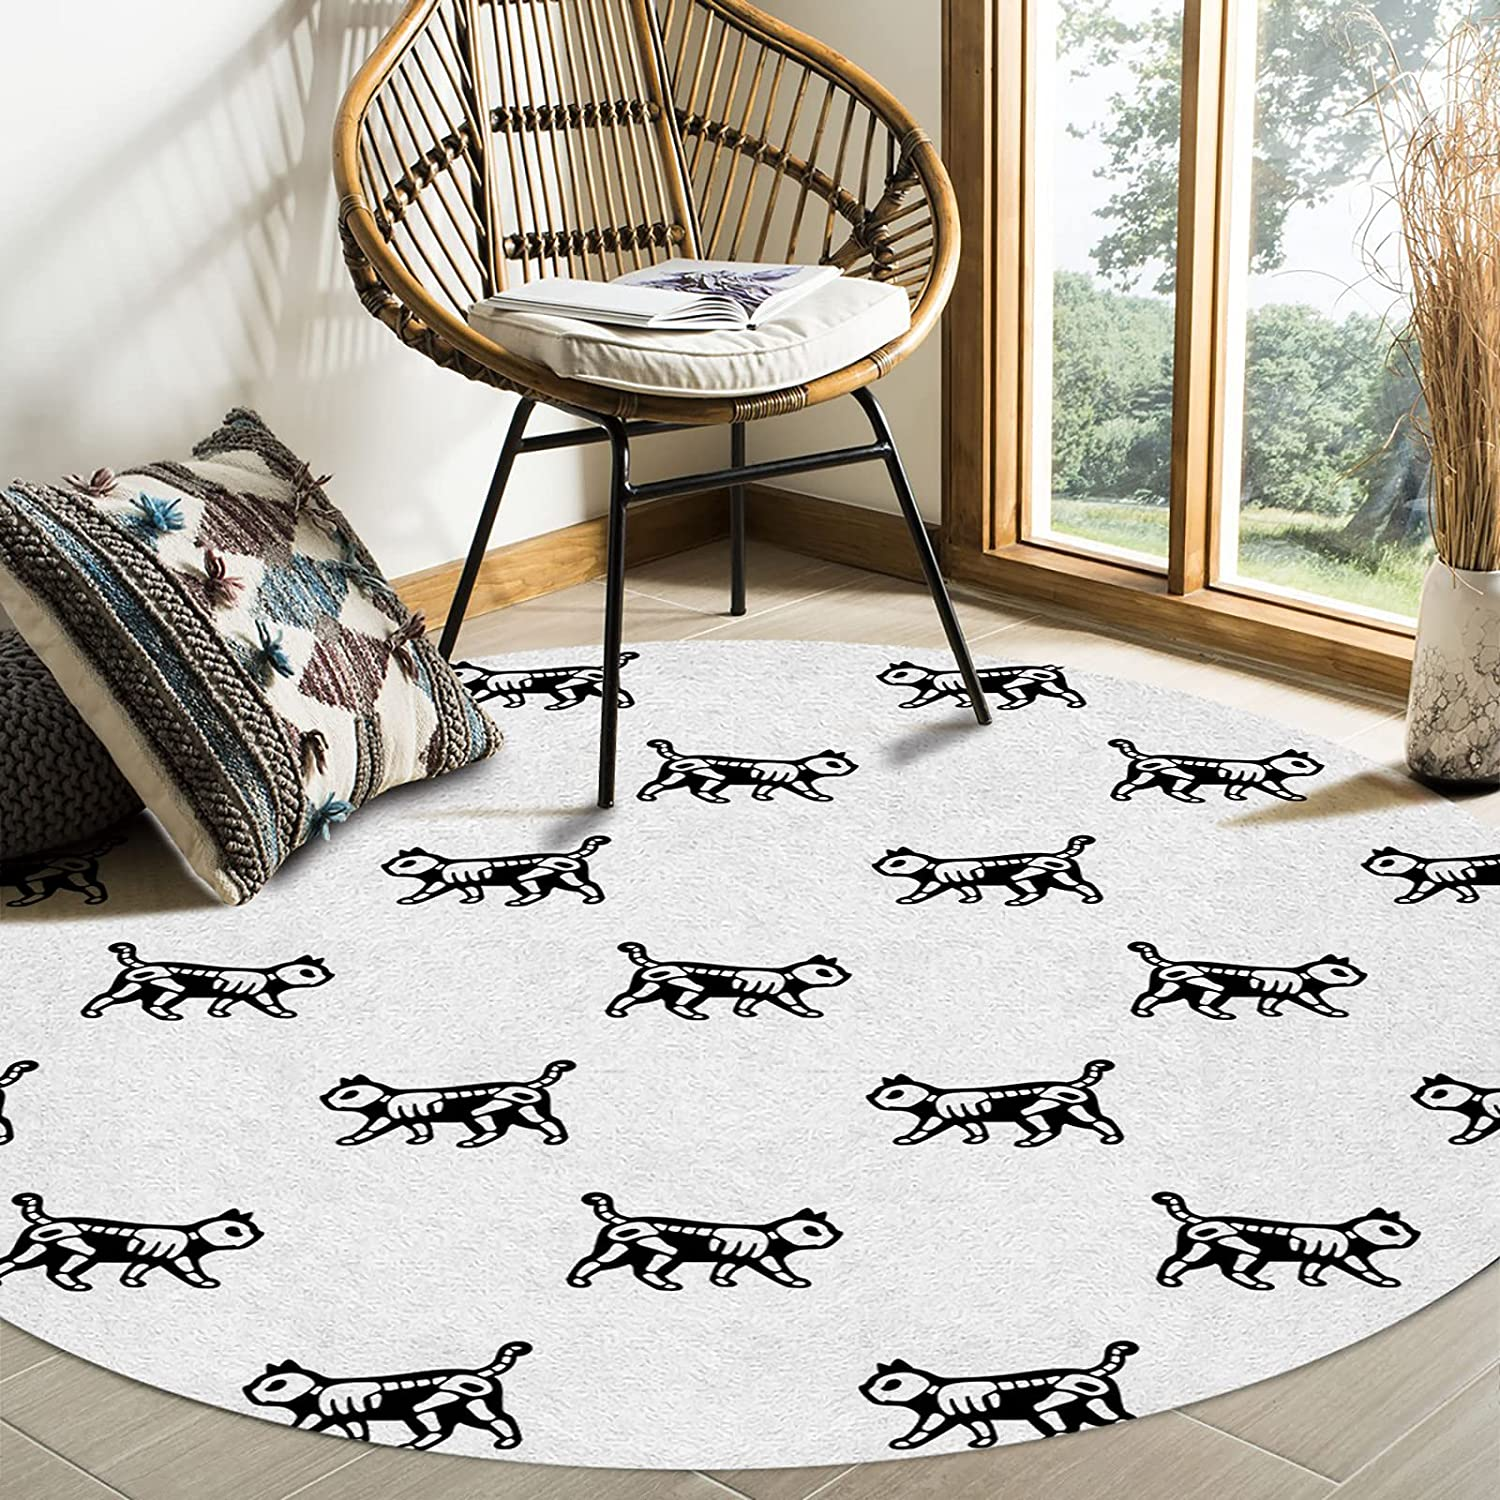 Olivefox Arlington Mall Round Area Rugs quality assurance Cat with White Skeleton Skull Super Sof